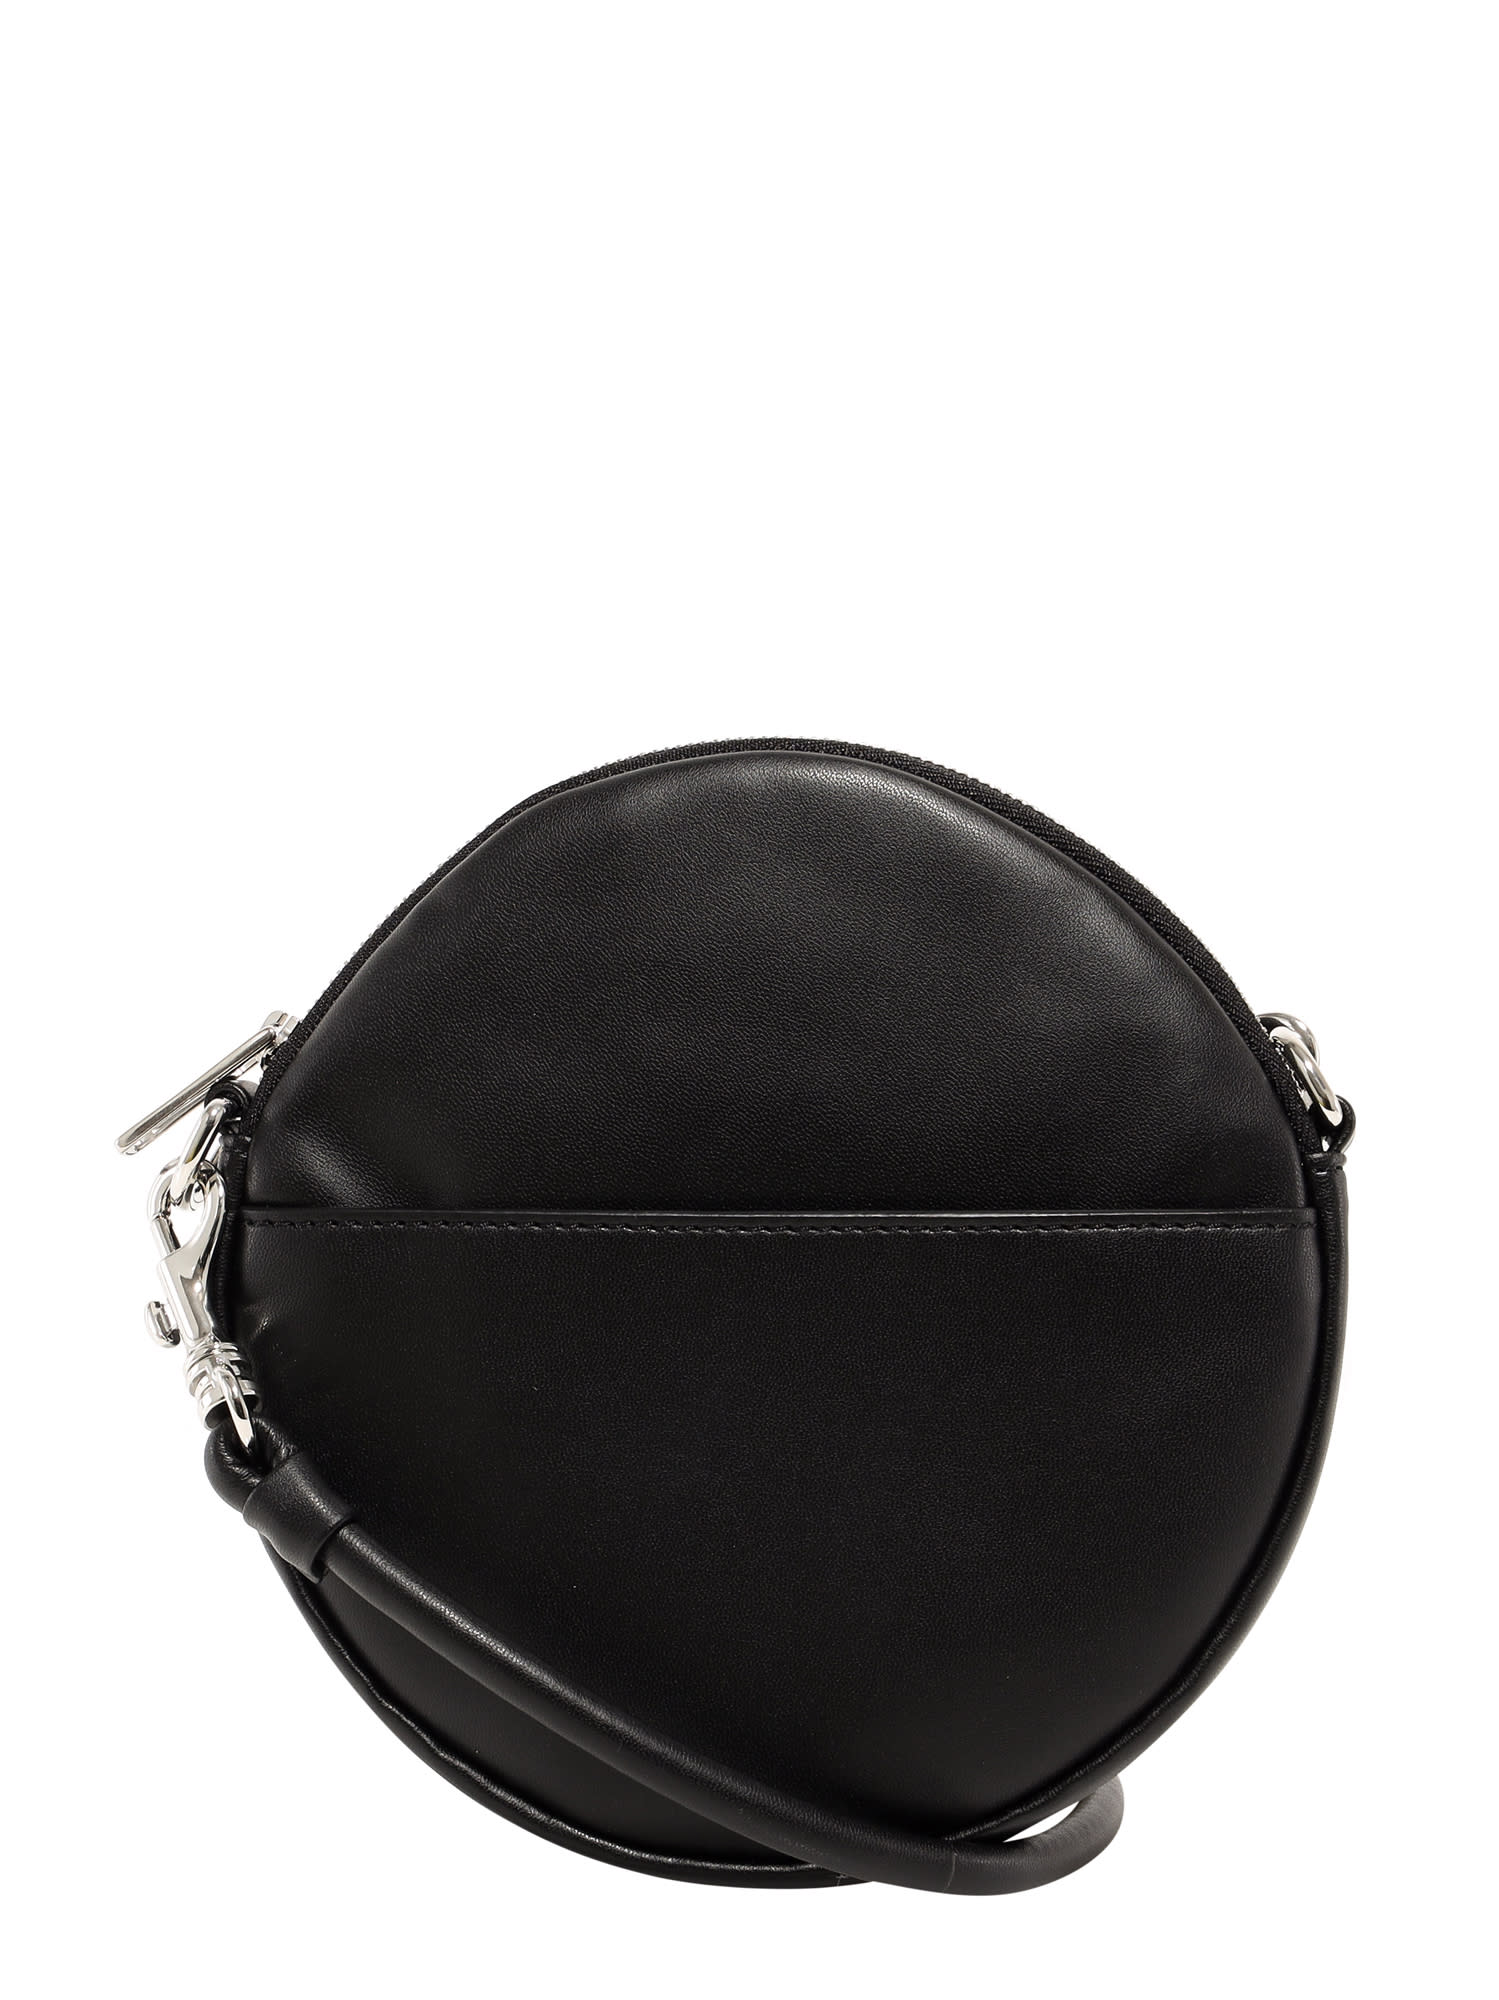 MM6 Maison Margiela Shoulder Bag